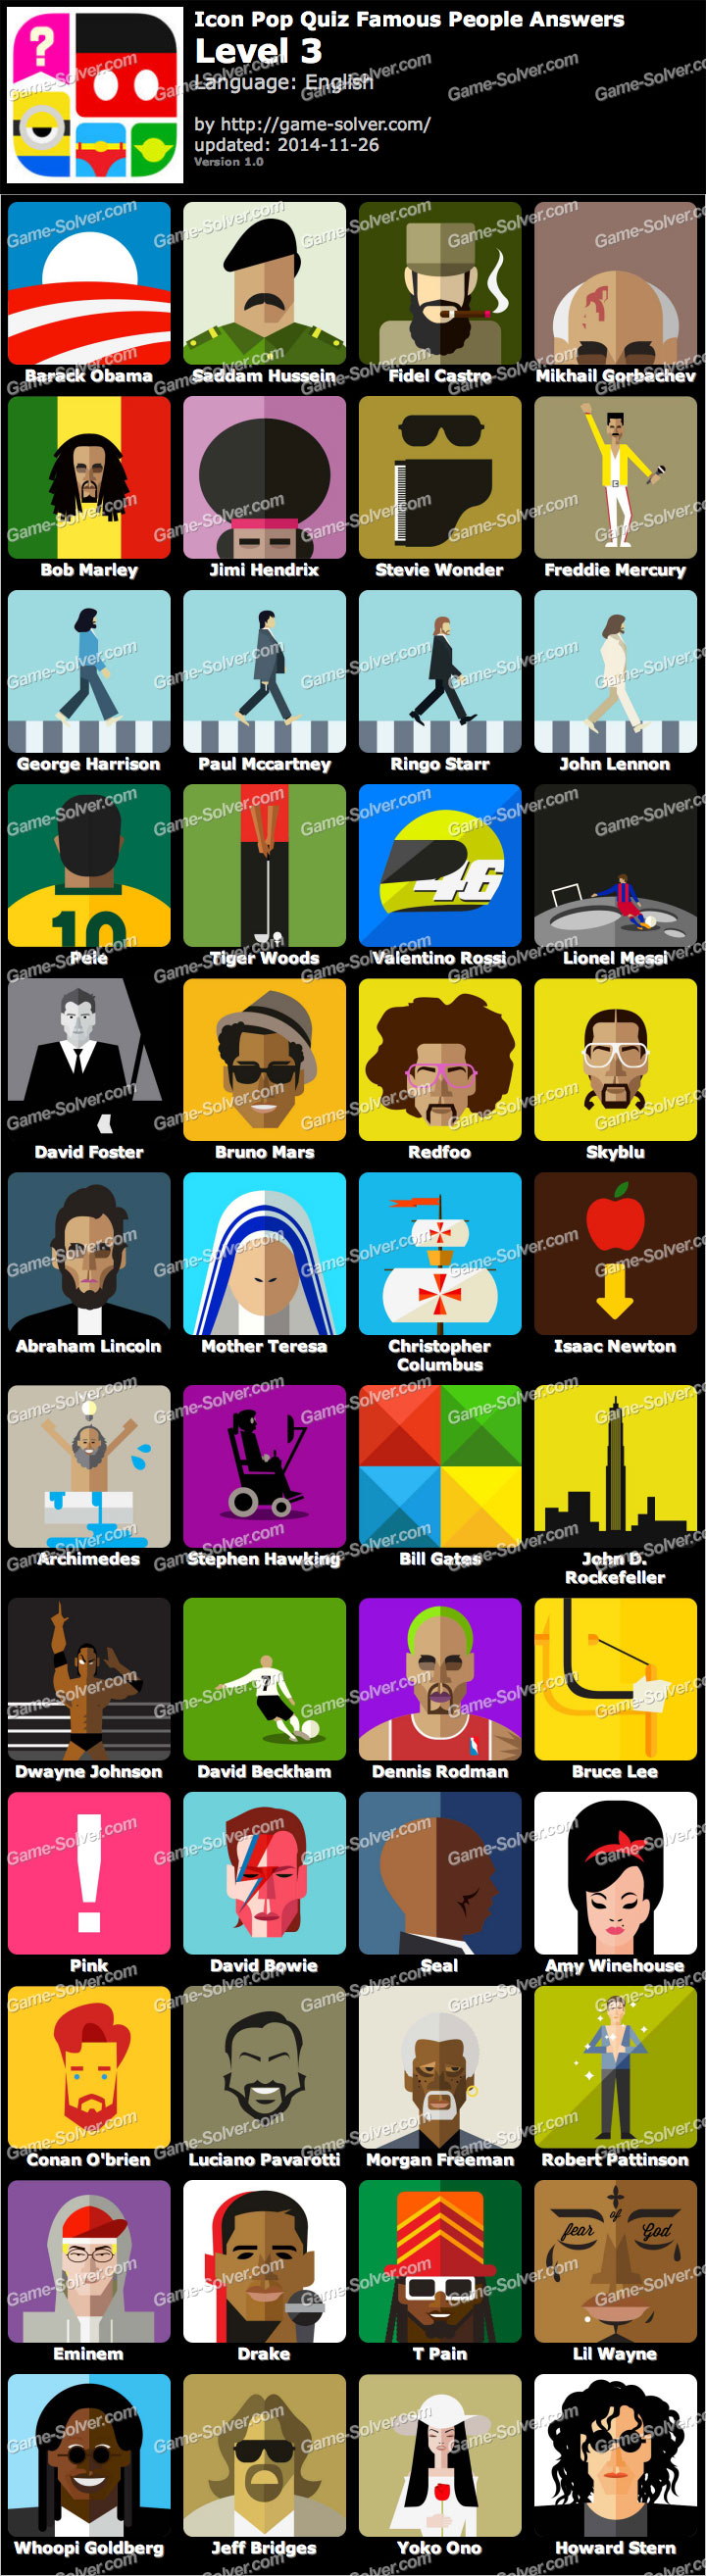 Icon Pop Quiz Answers Famous People : Icon Pop Answers